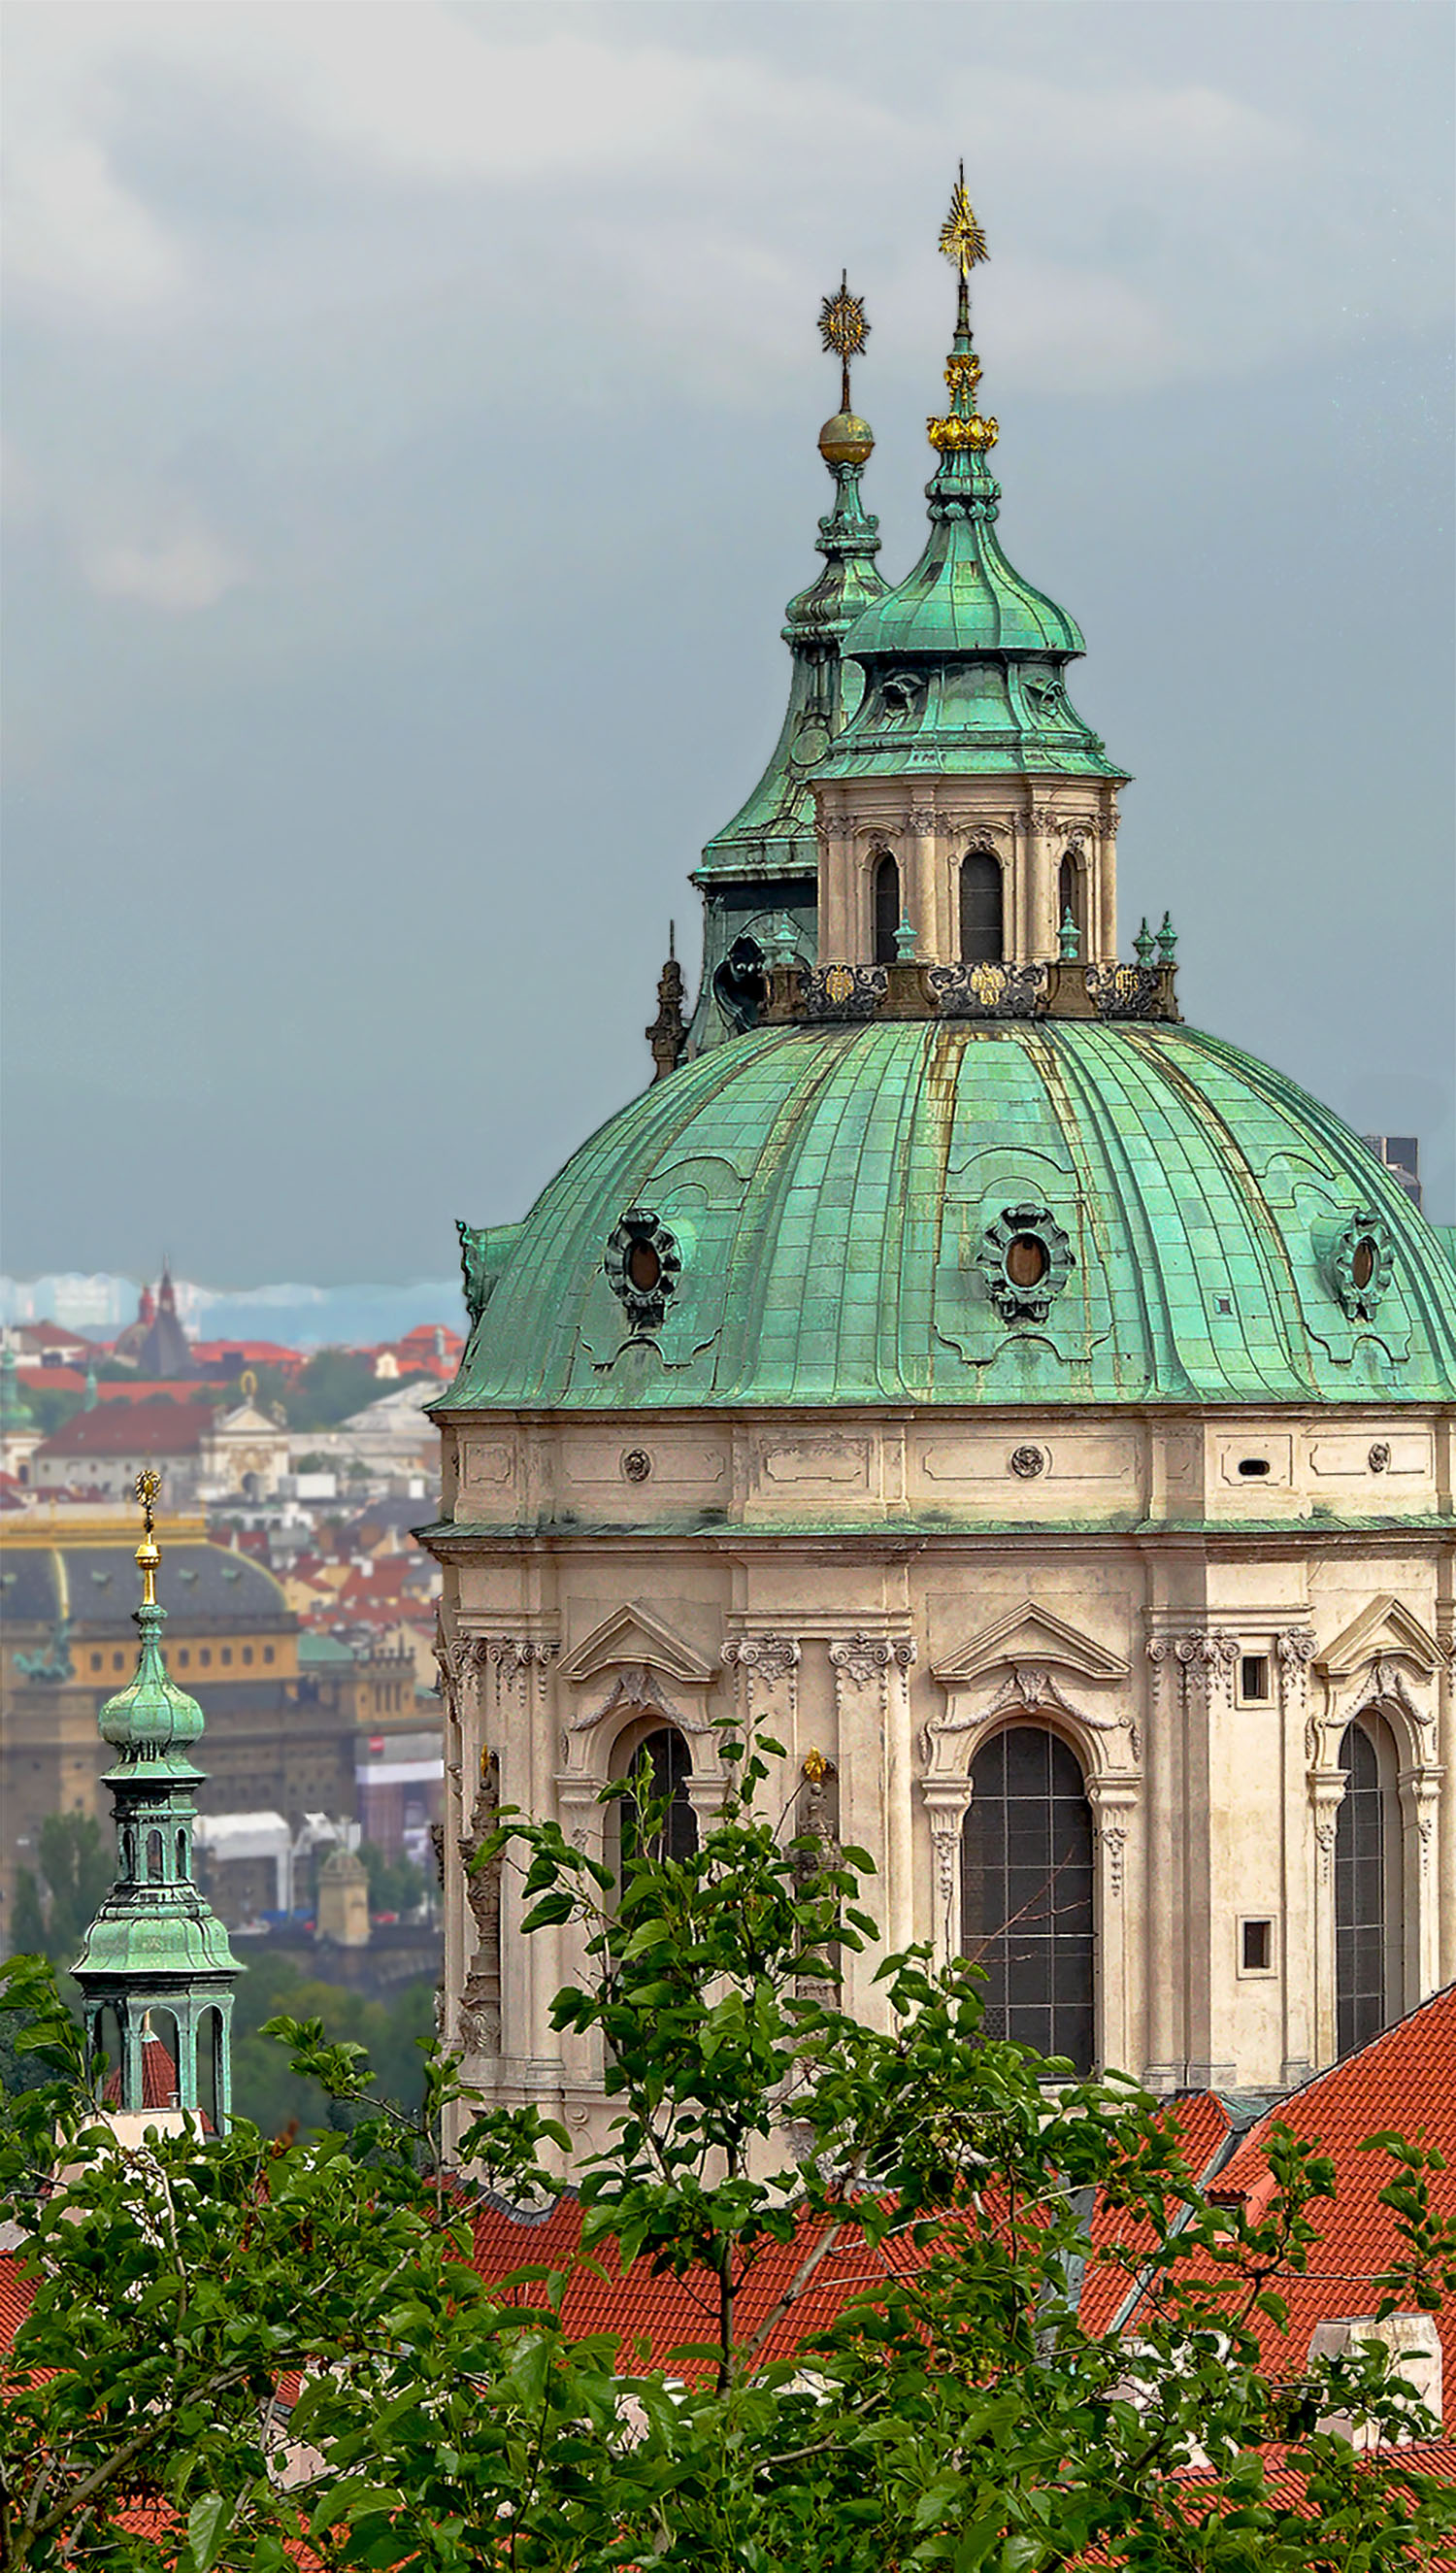 Image: Seeing this domed rooftop from an adjoining property delivered a unique view. If I'd ca...